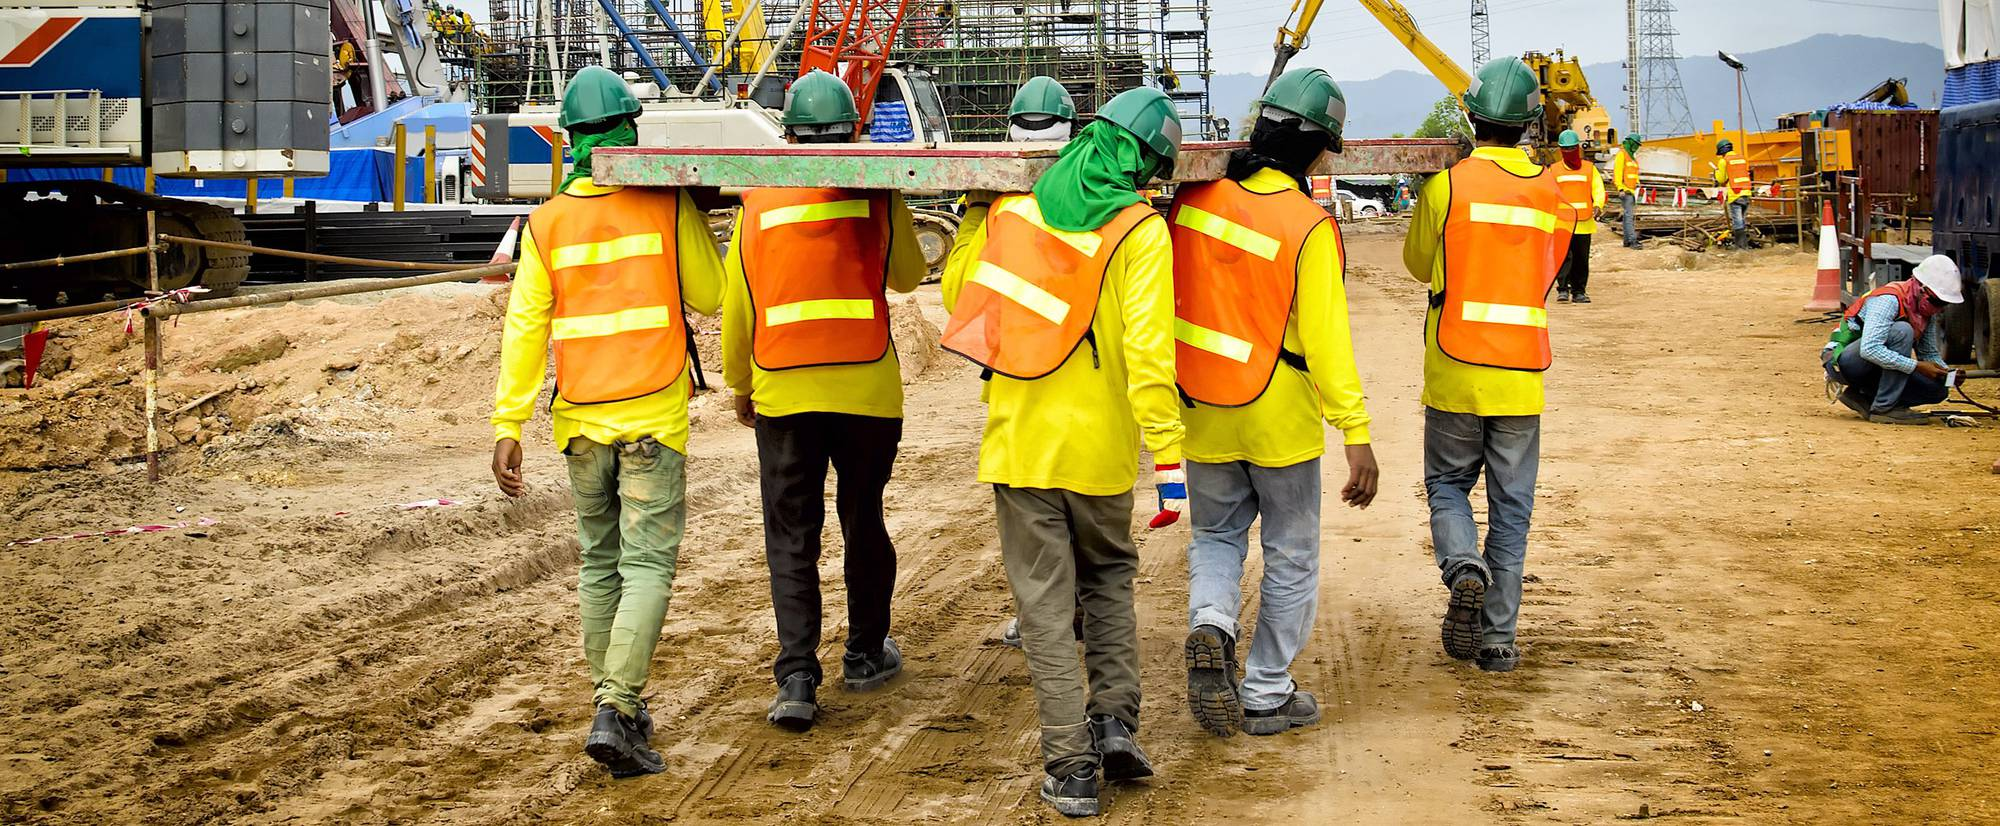 worker misclassification hurts the construction industry constructconnectcom - Construction Laborer